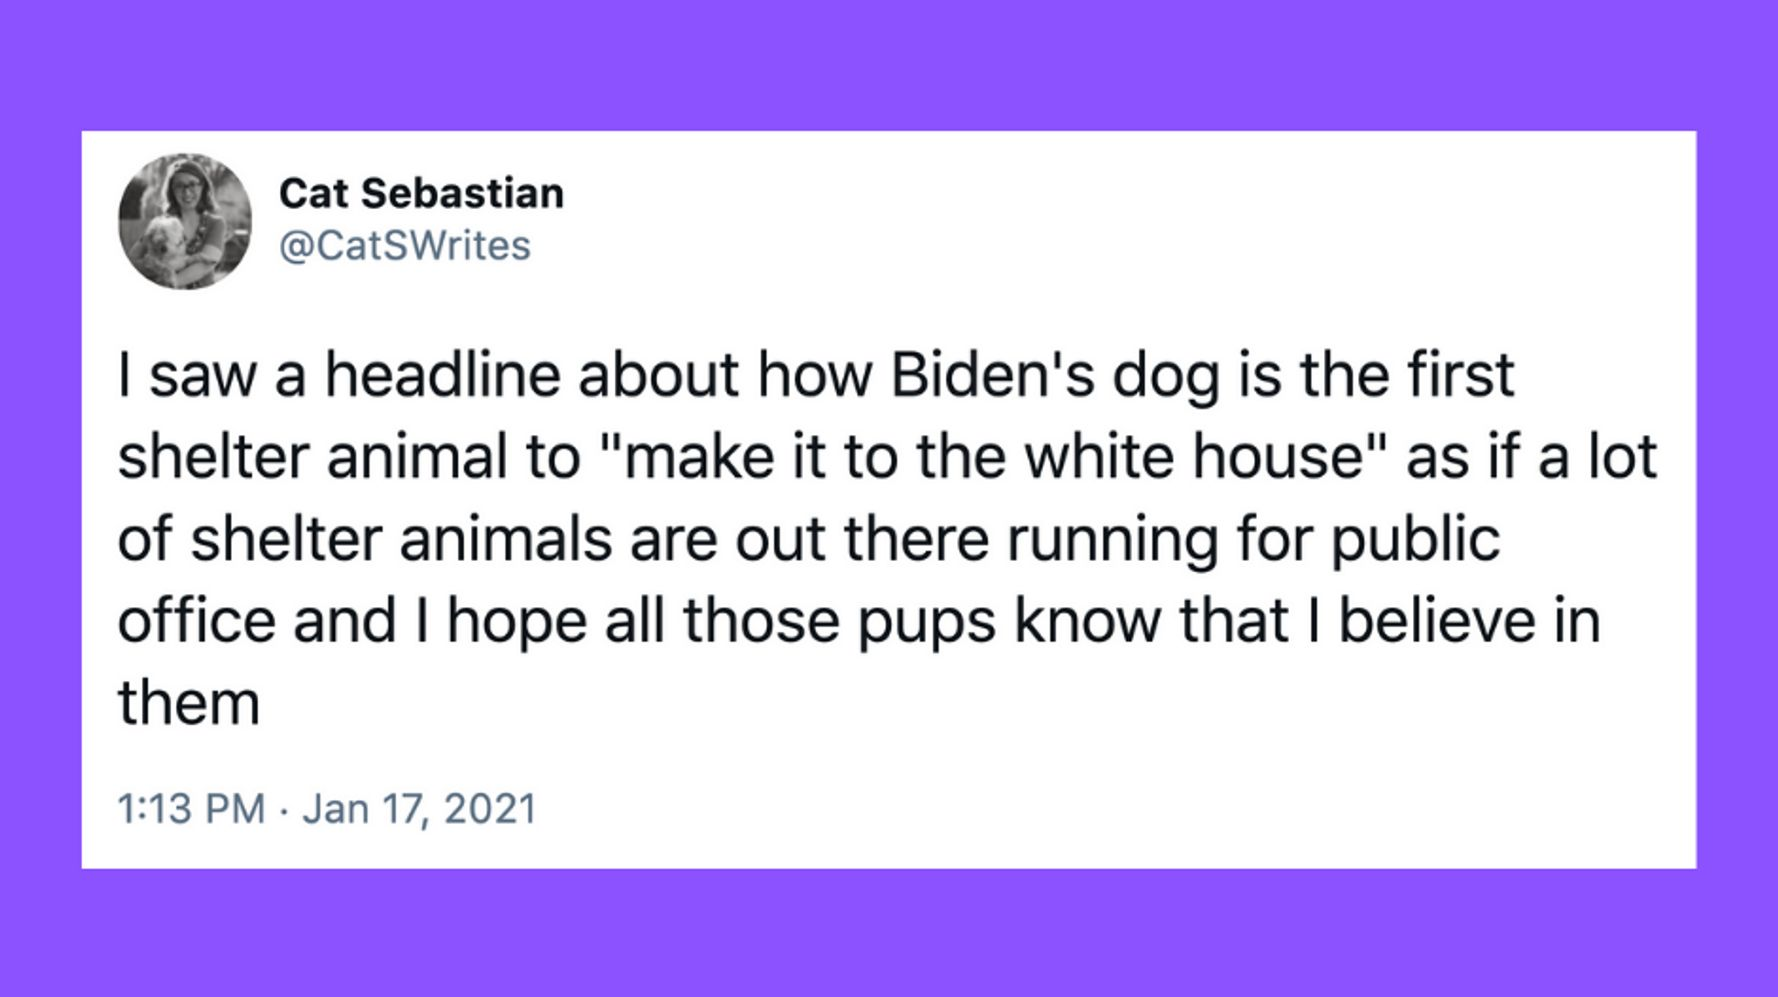 22 Of The Funniest Tweets About Cats And Dogs This Week (Jan. 16-22)